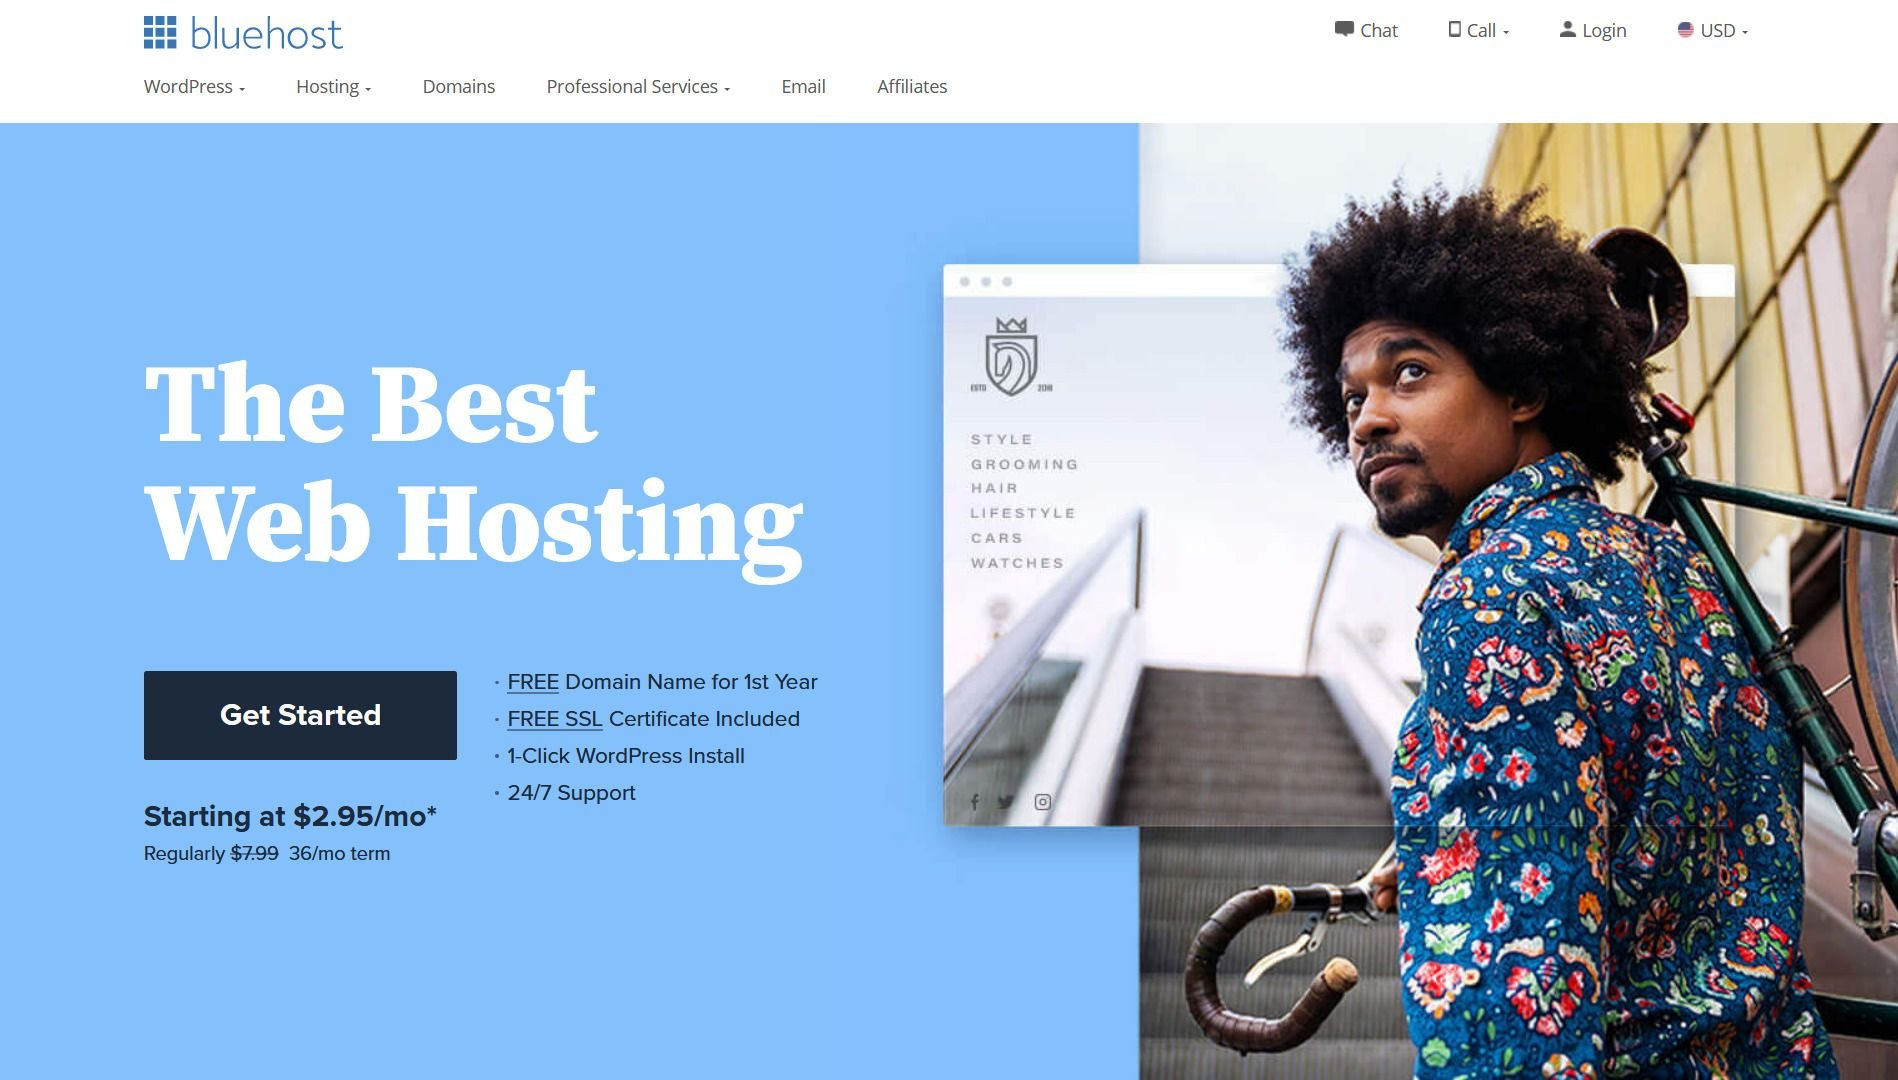 bluehost banner for godaddy alternatives